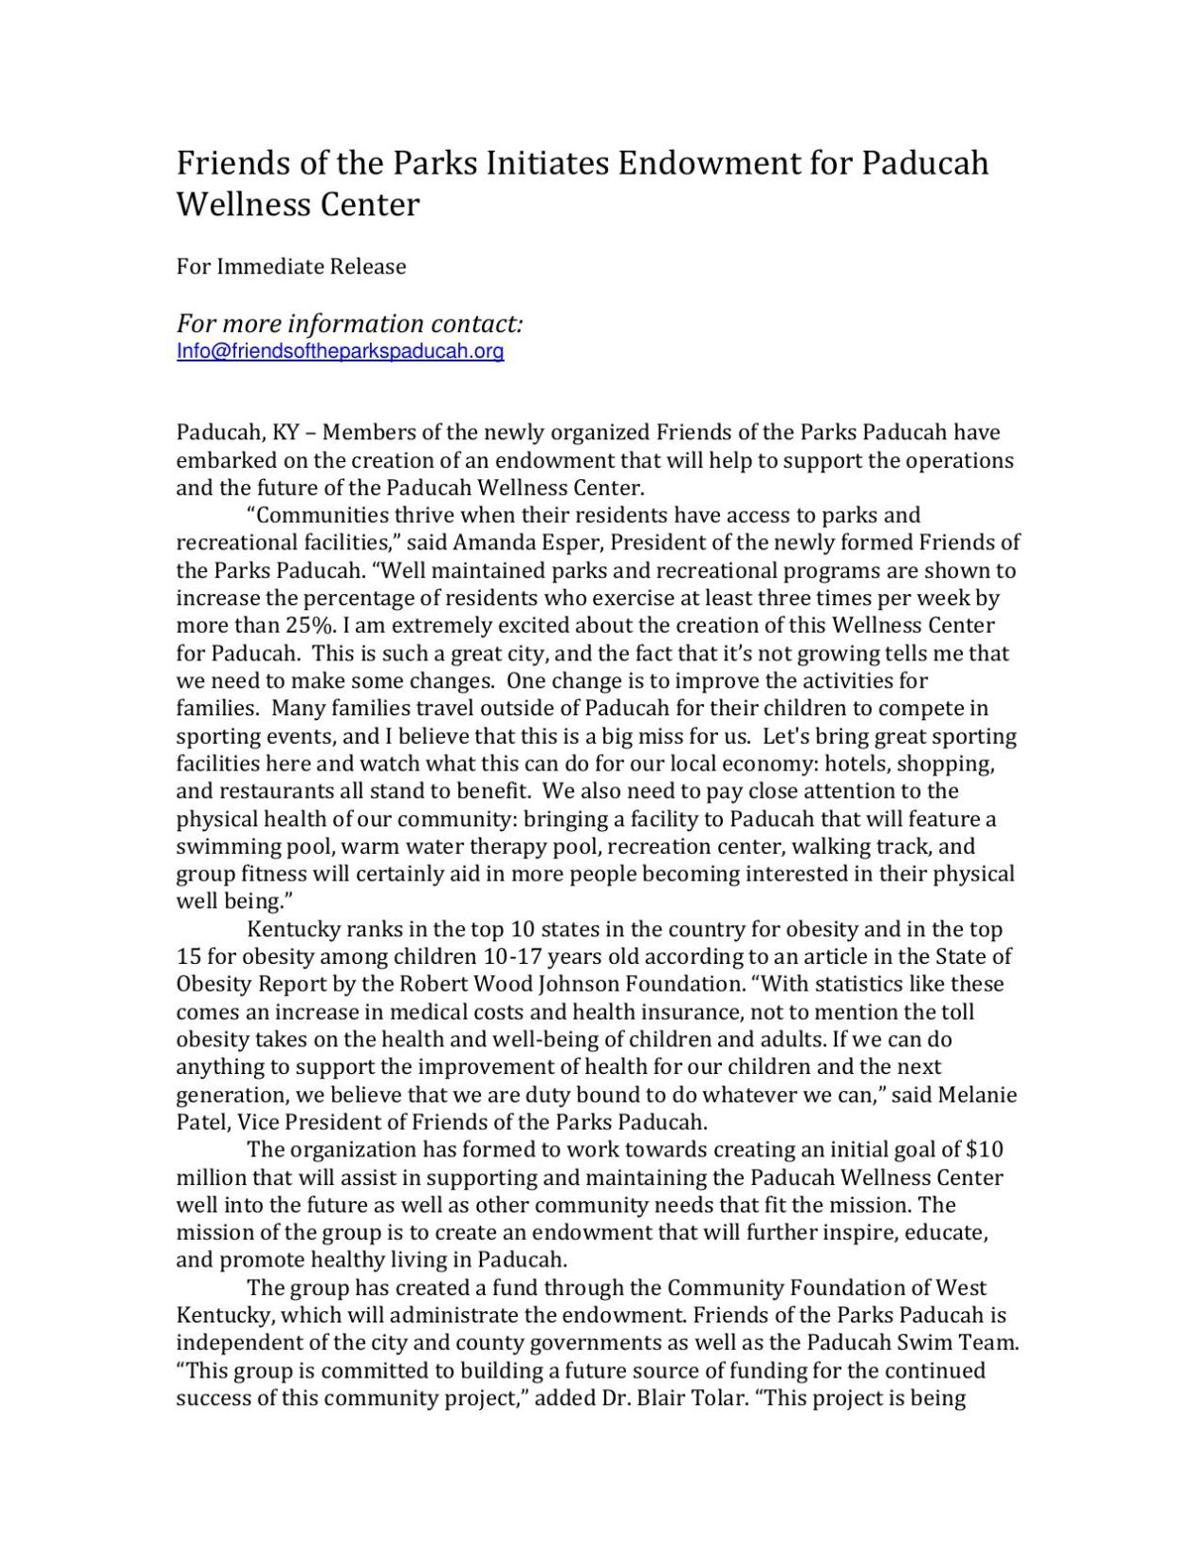 Friends of the Parks Initiates Endowment for Paducah Wellness Center